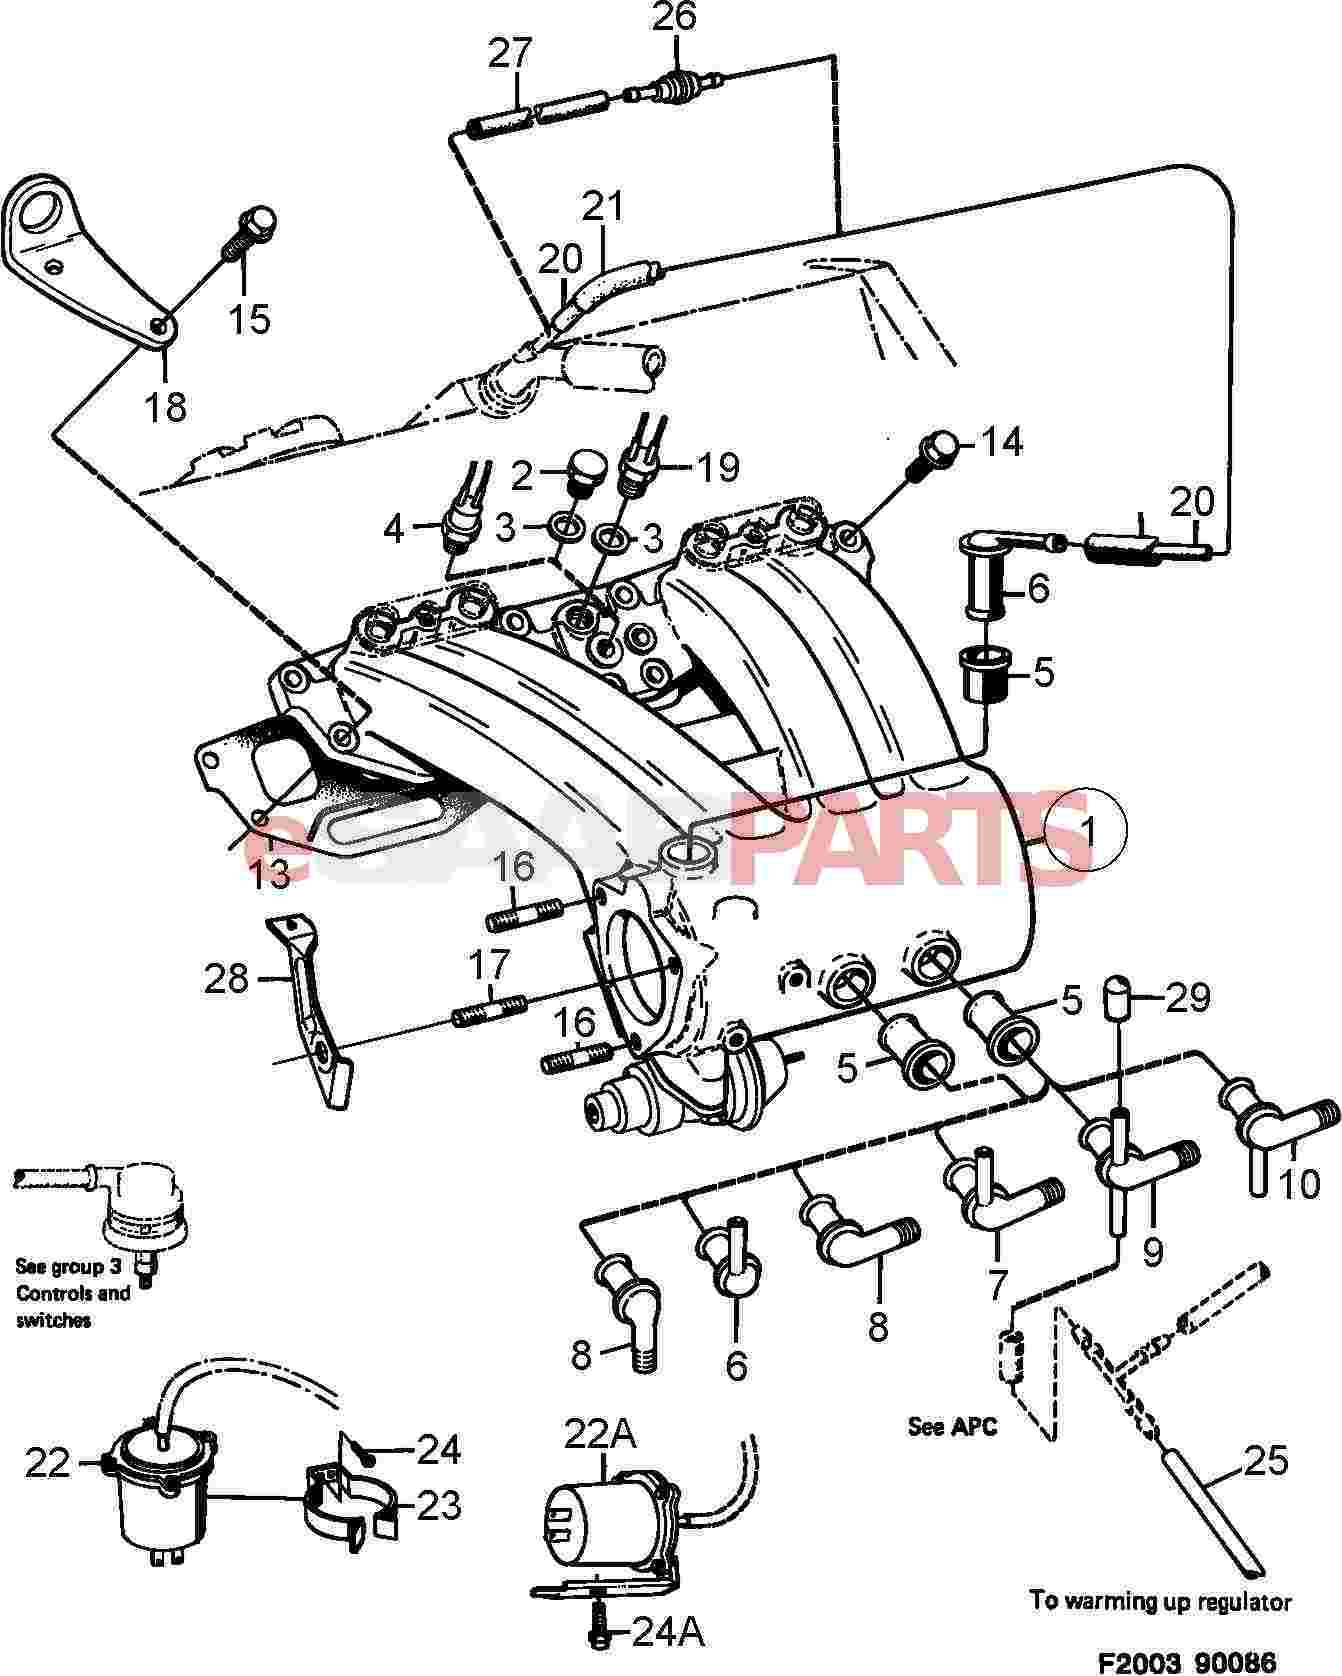 buick lesabre door panel diagram  buick  tractor engine and wiring diagram